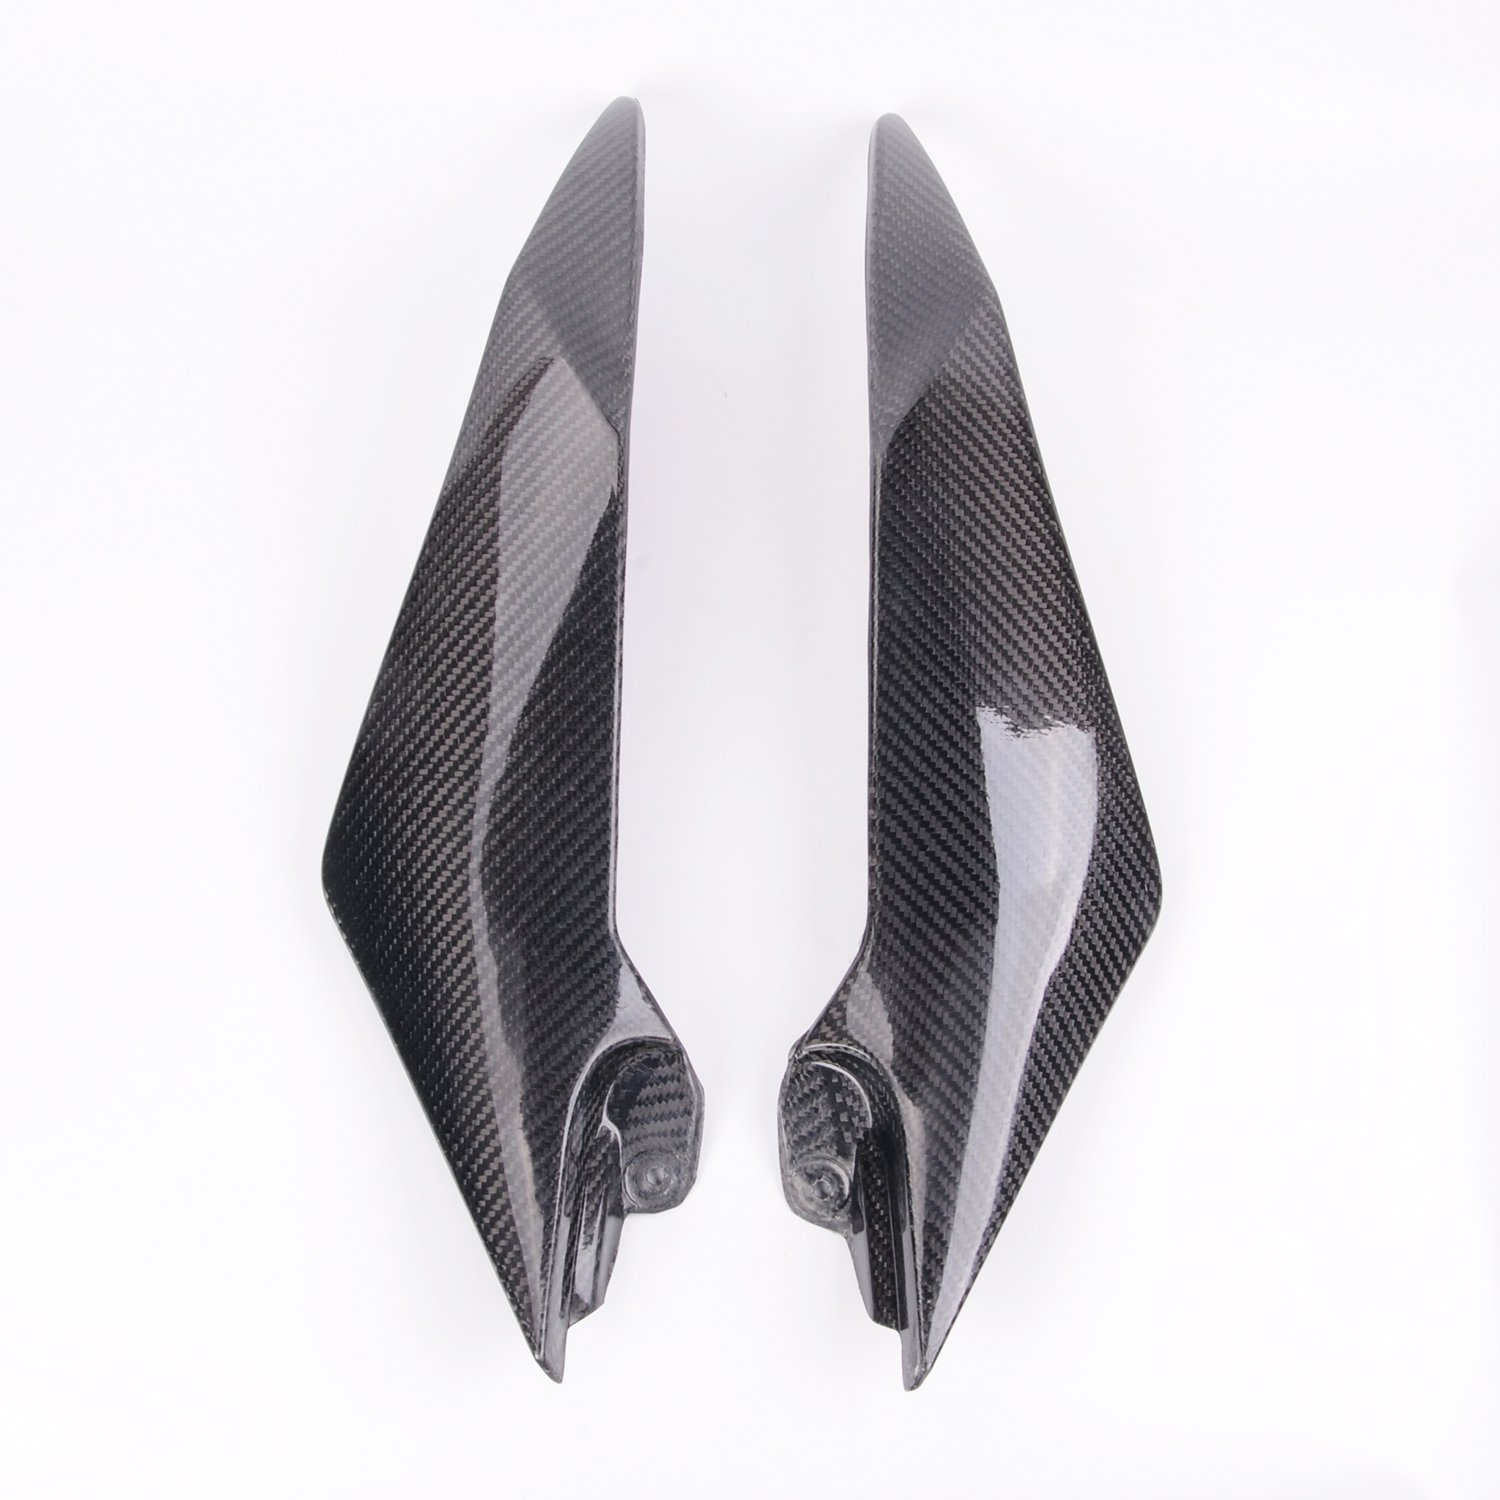 Sunny New Carbon Fiber Tank Side Covers Panels Fairing For Yamaha YZF R6 08-2015 09 10